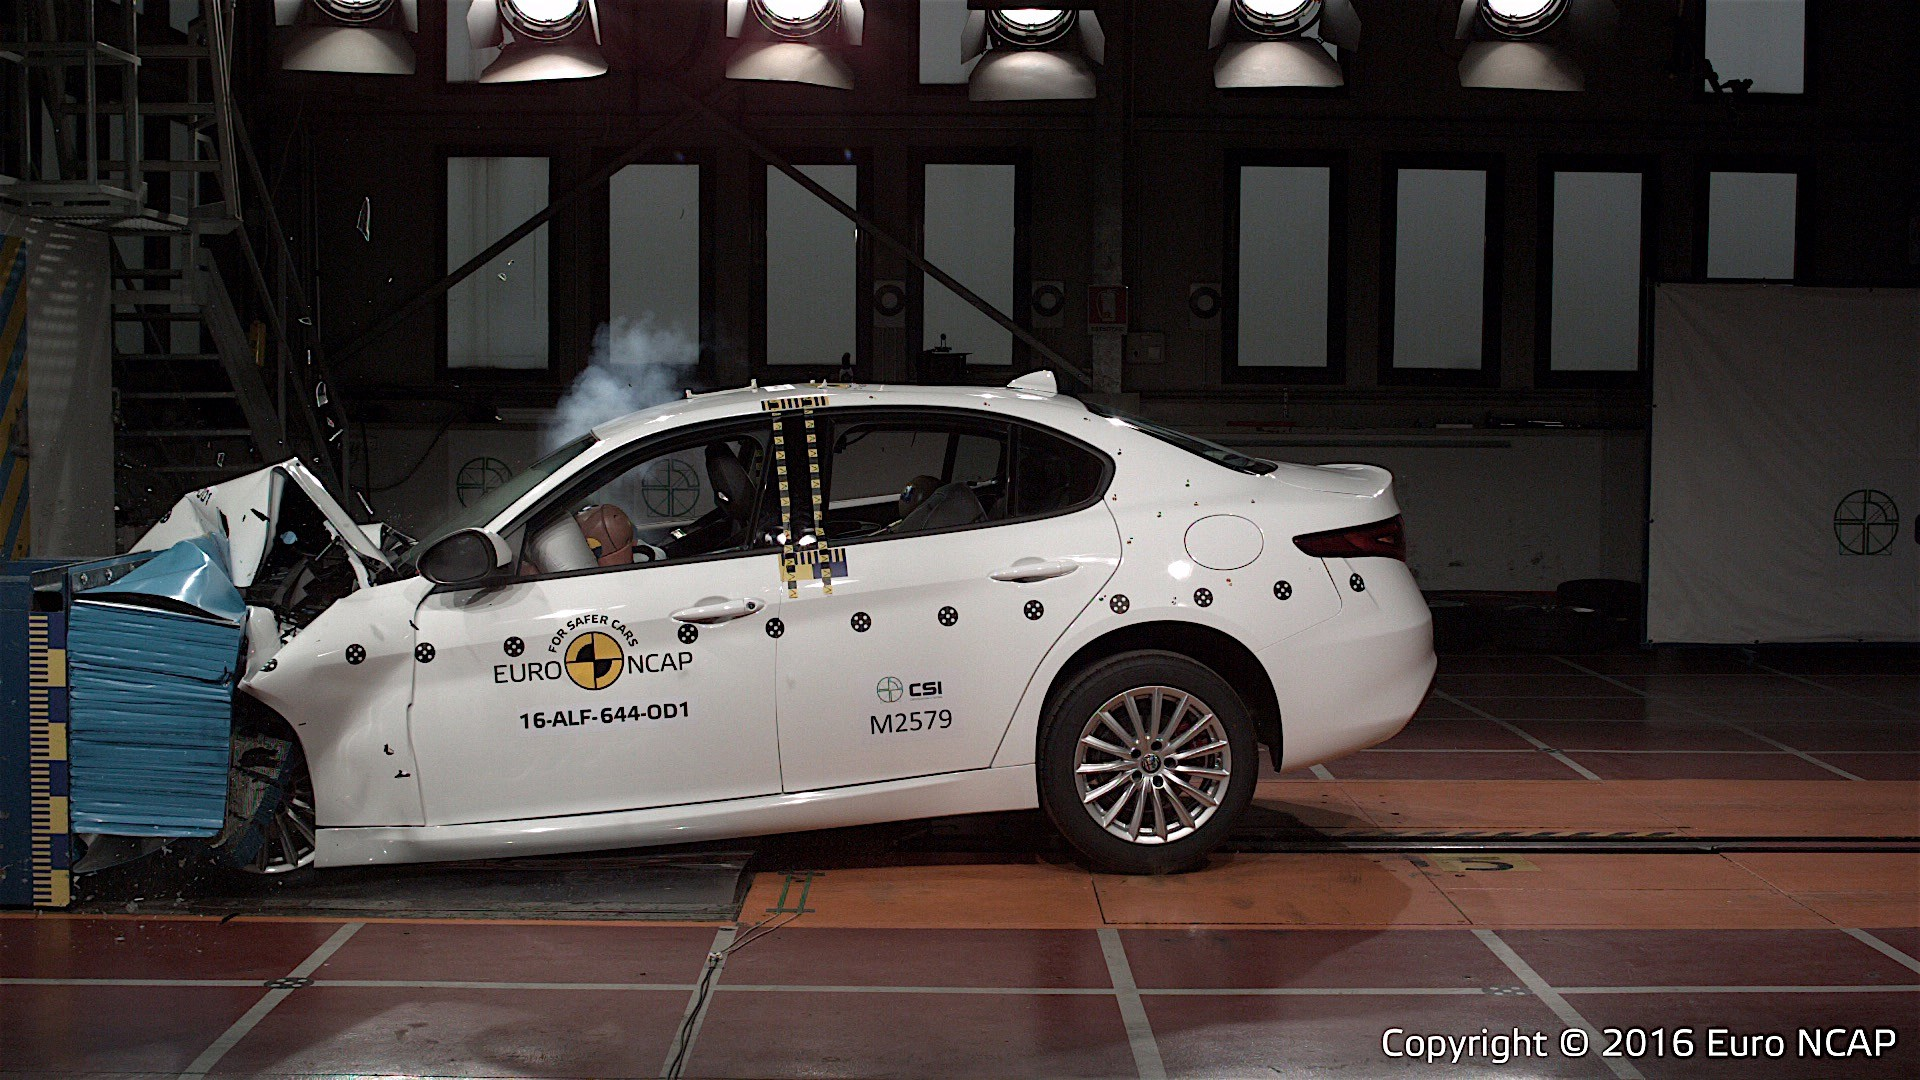 Euroncap Tests Alfa Romeo Giulia Seat Ateca And Vw